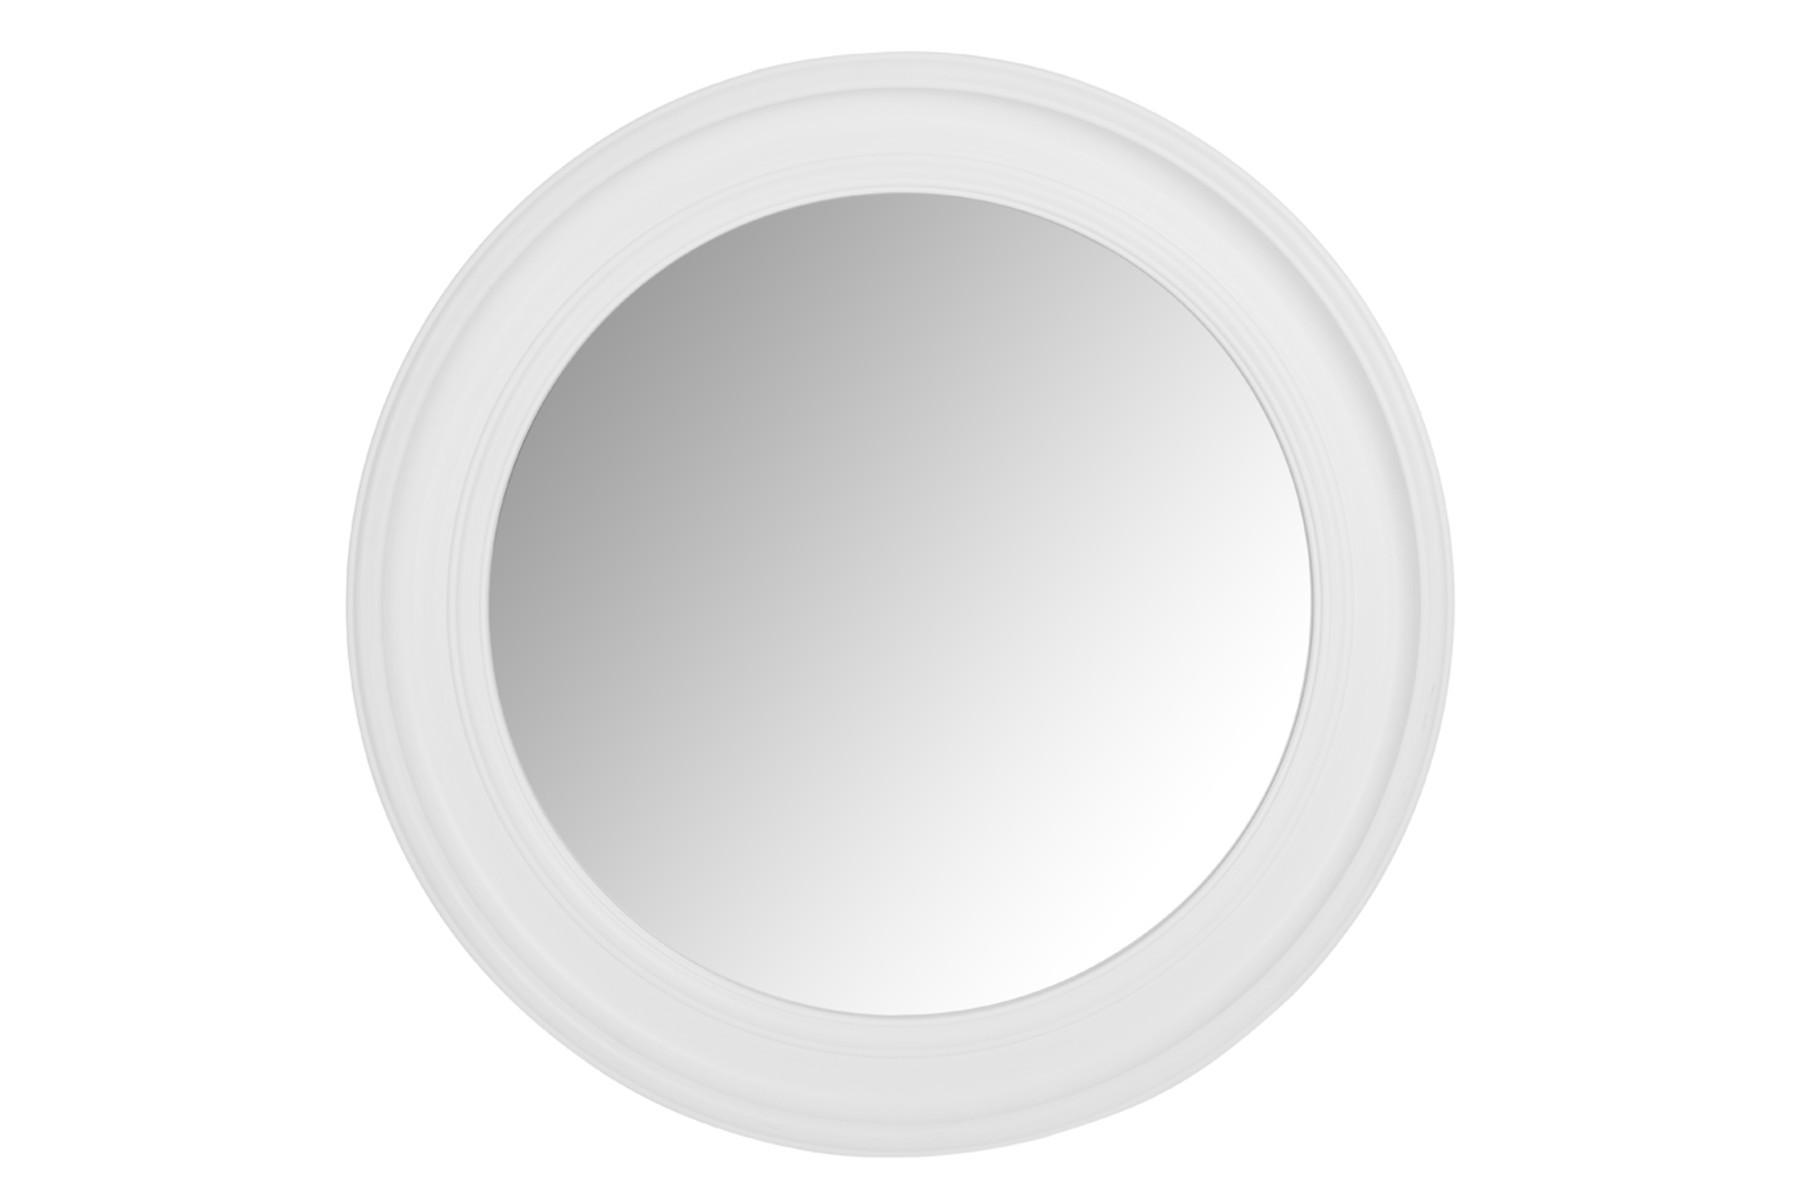 Made To Order Furniture – Alena Large Round White Mirror | Laura In Large Round Black Mirror (Image 14 of 20)